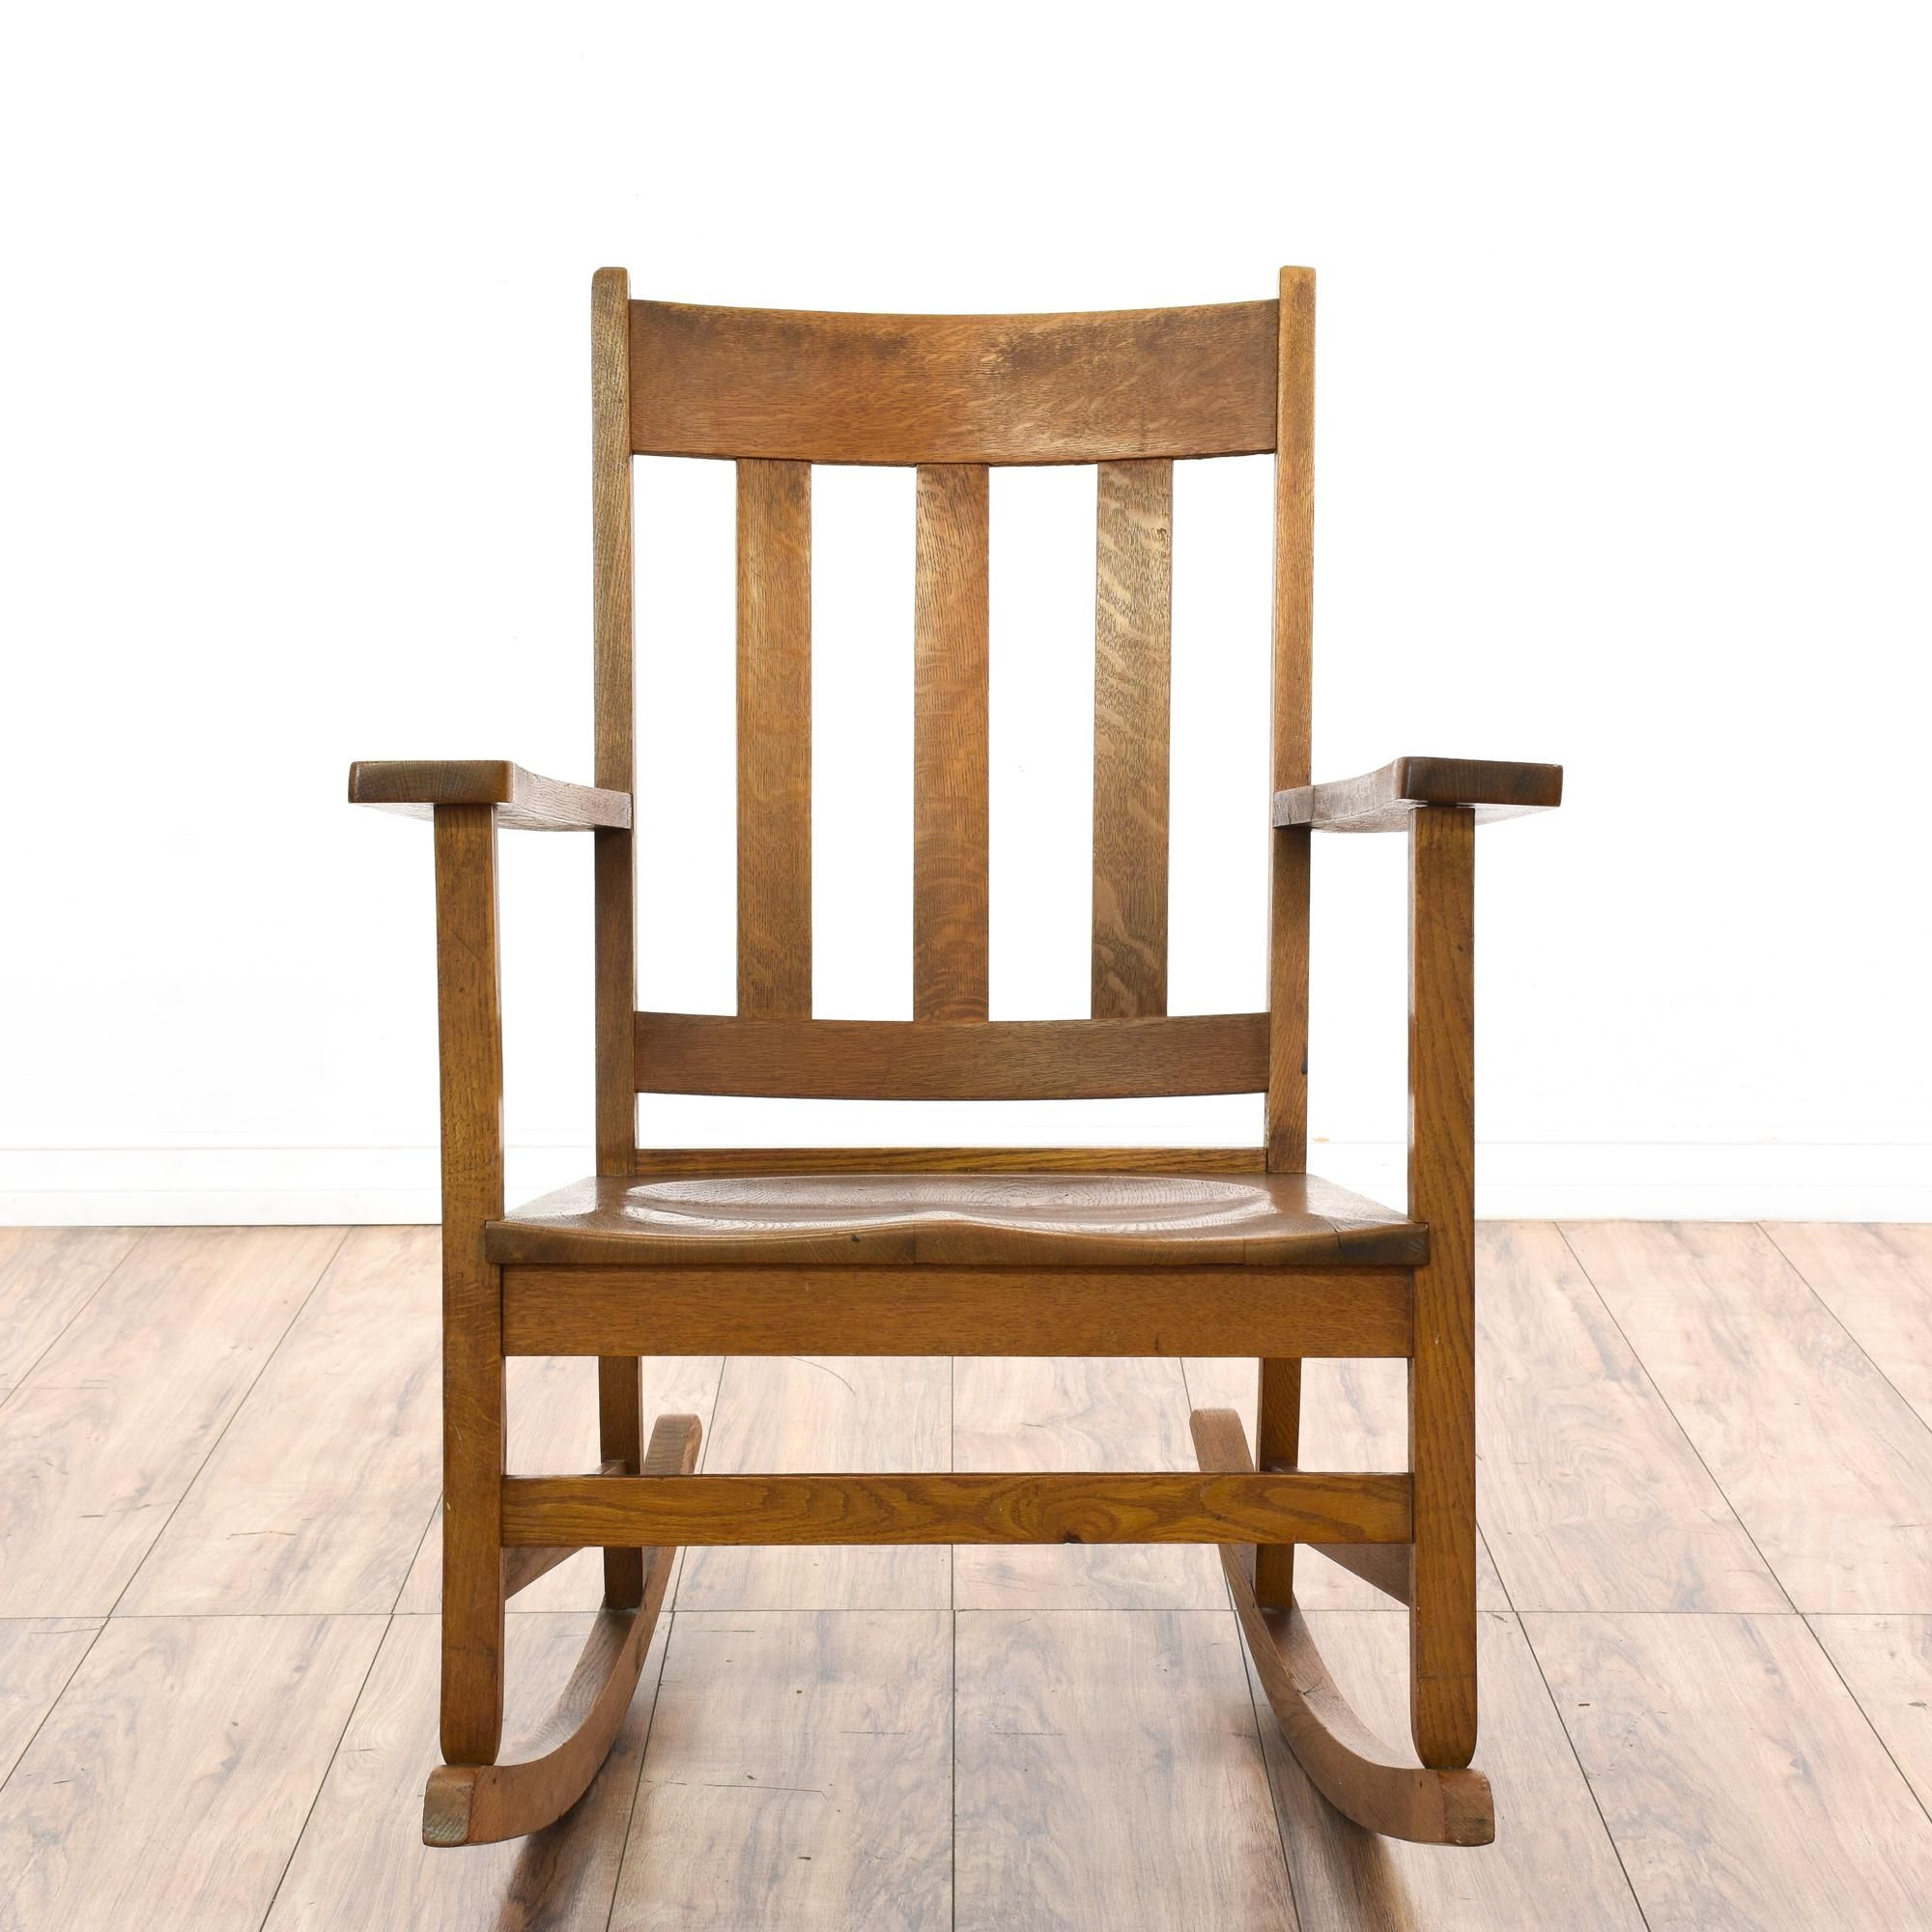 This Rocking Chair Is Featured In A Solid Wood With A Glossy Dark Oak Finish This Country Chic Style Rocker Has A Slat B Rocking Chair Chair Vintage Furniture